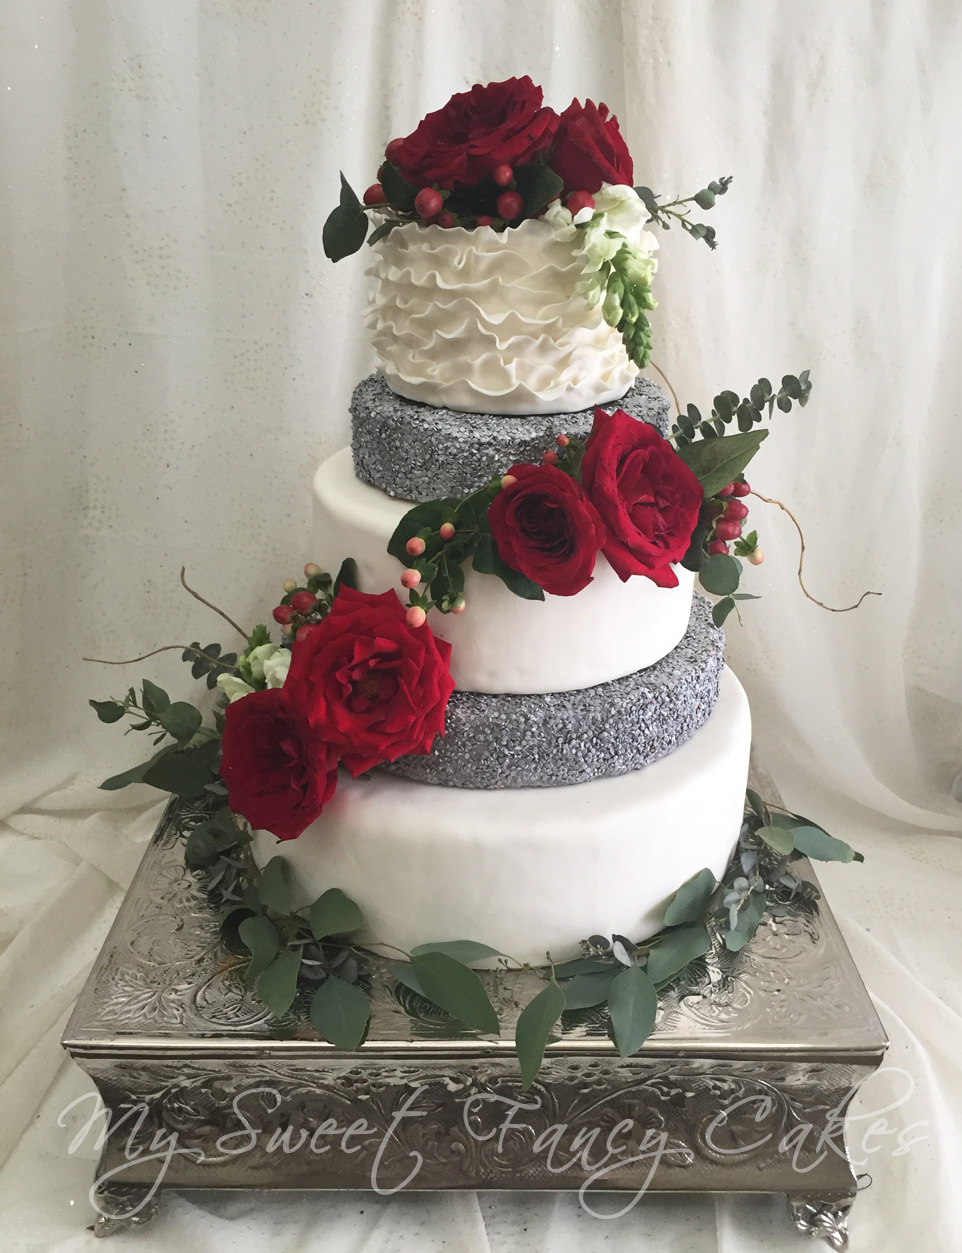 My Sweet Fancy Cakes: Sequin Red Rose Wedding Cake